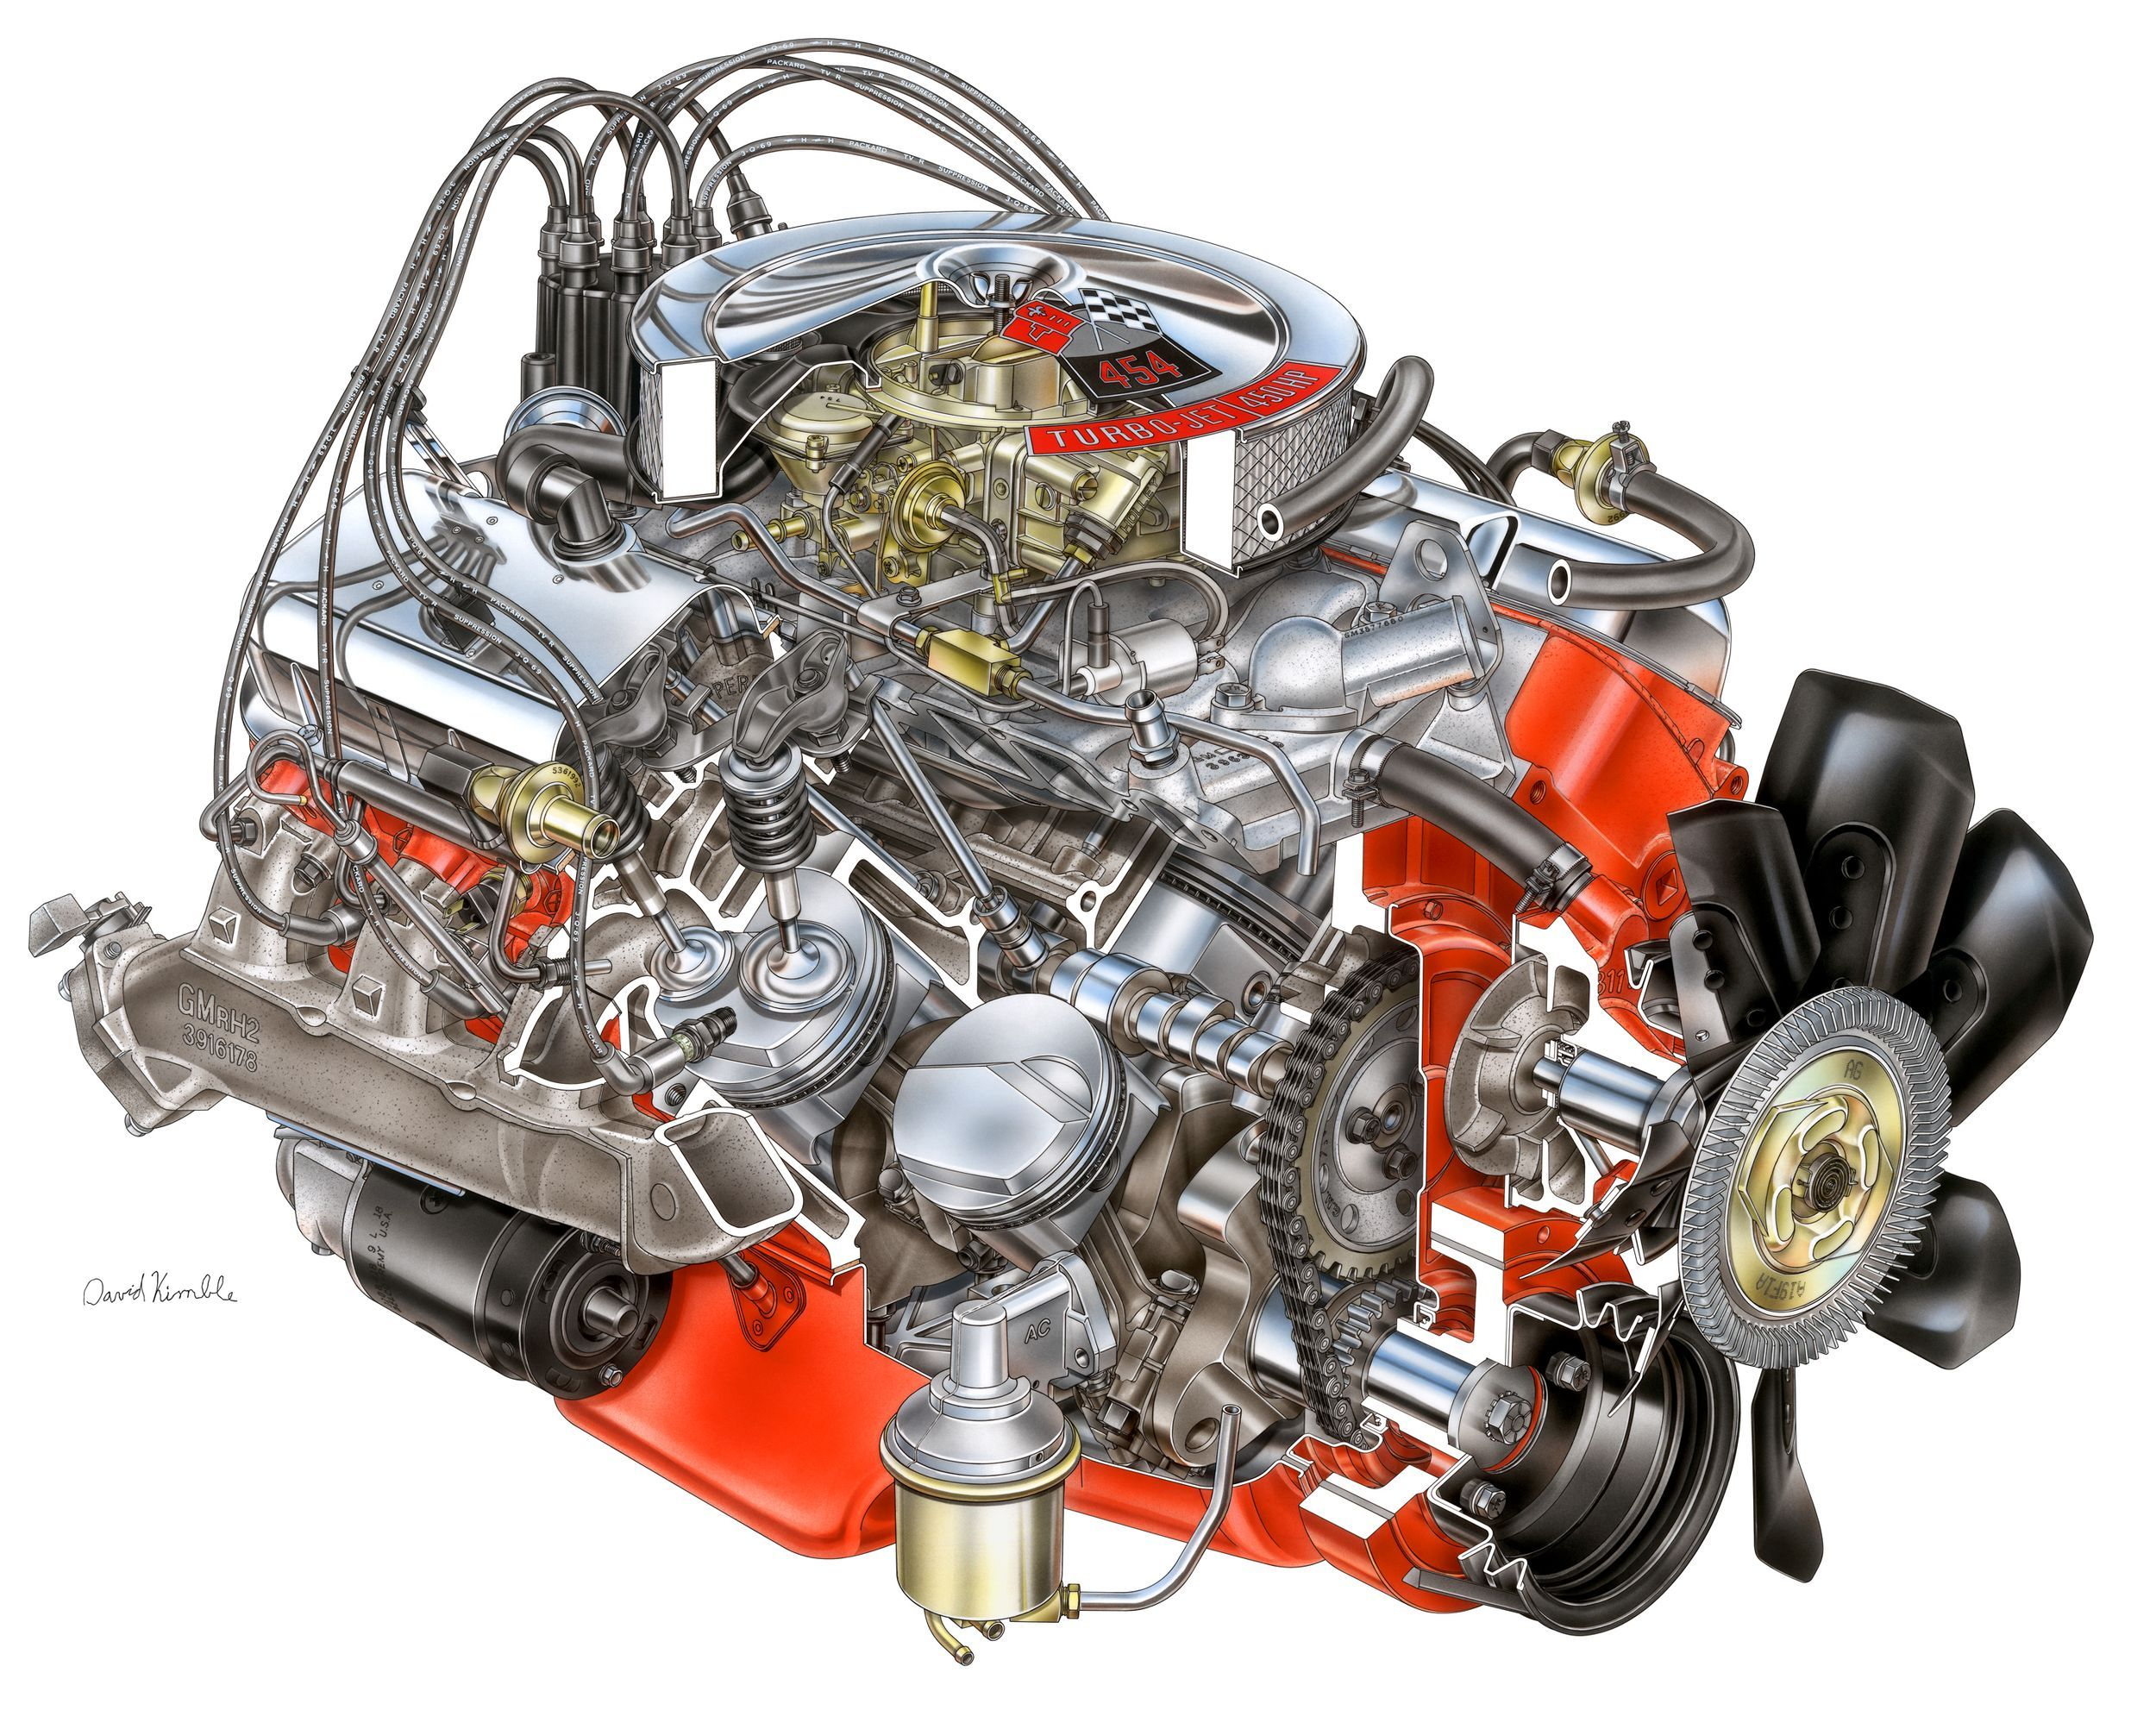 small resolution of chevrolet ls6 454 450hp engine cutaway